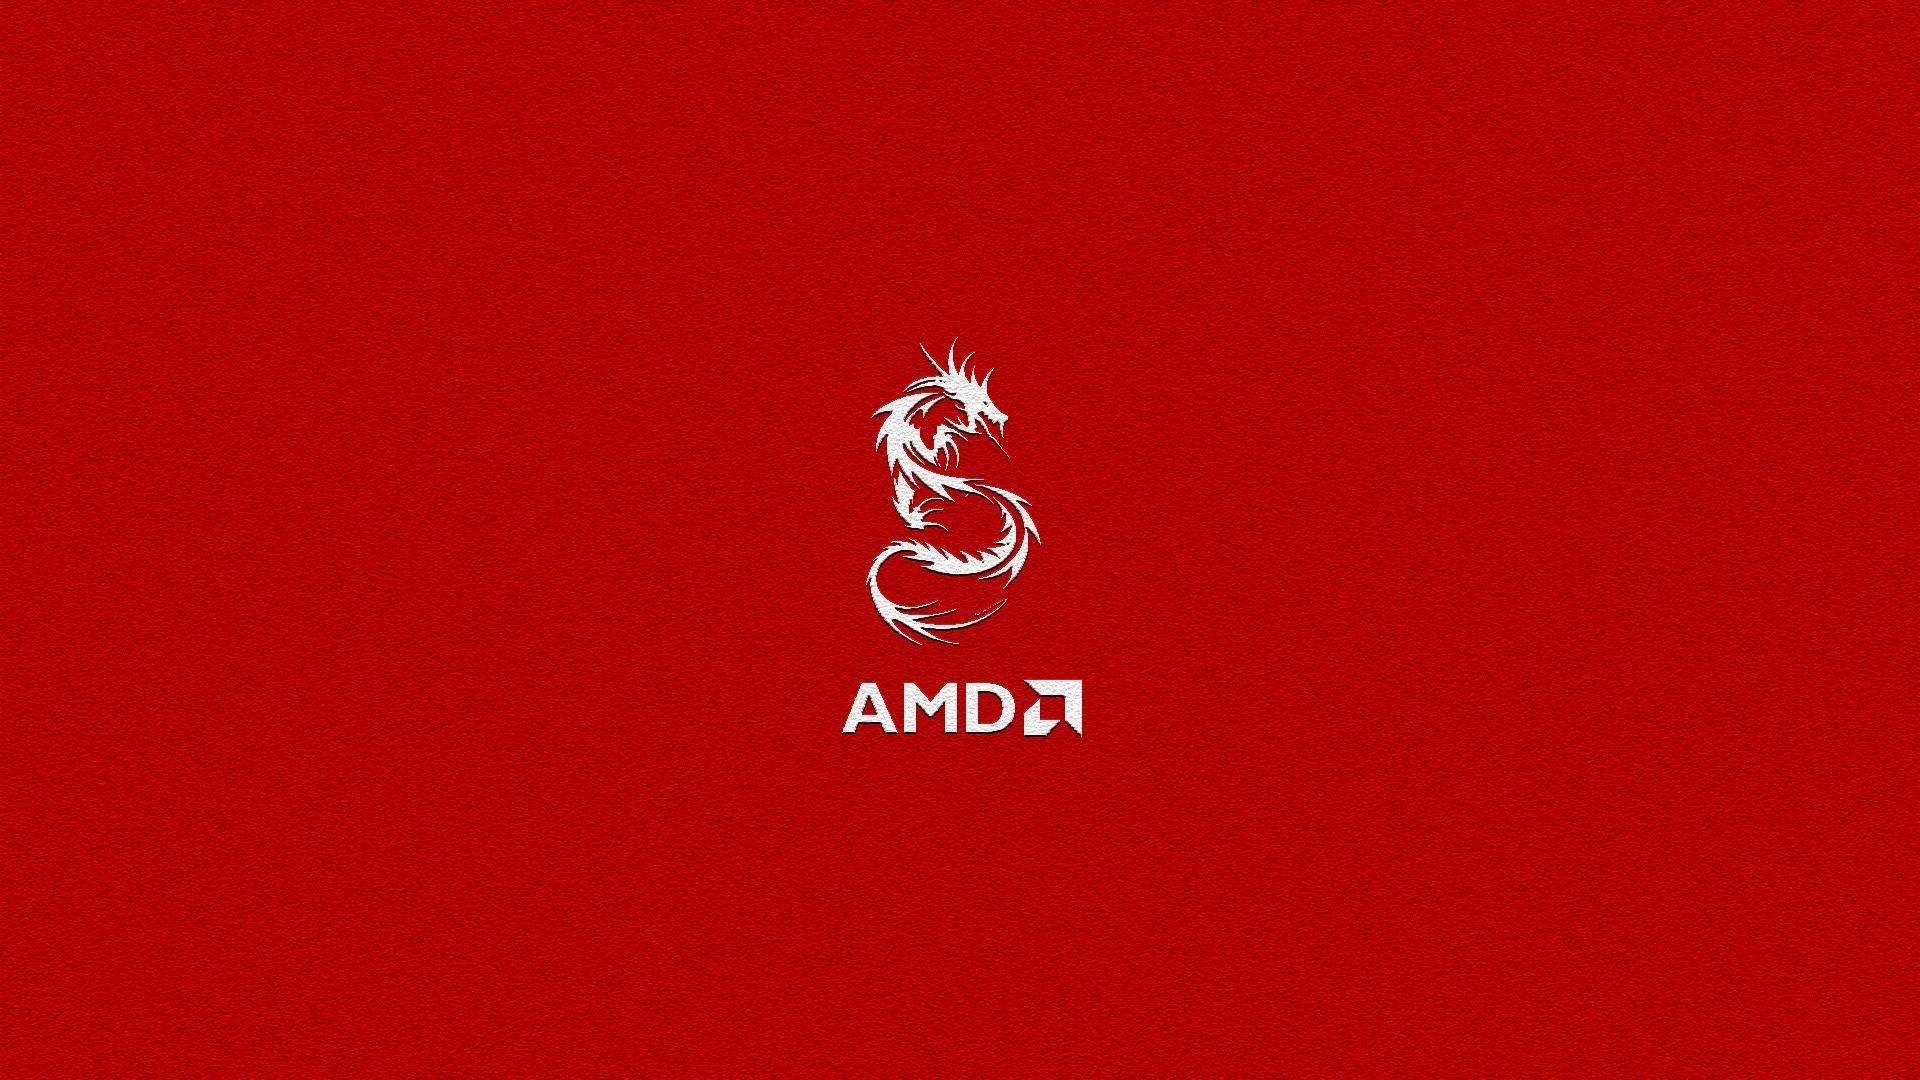 amd radeon wallpapers hd - photo #34